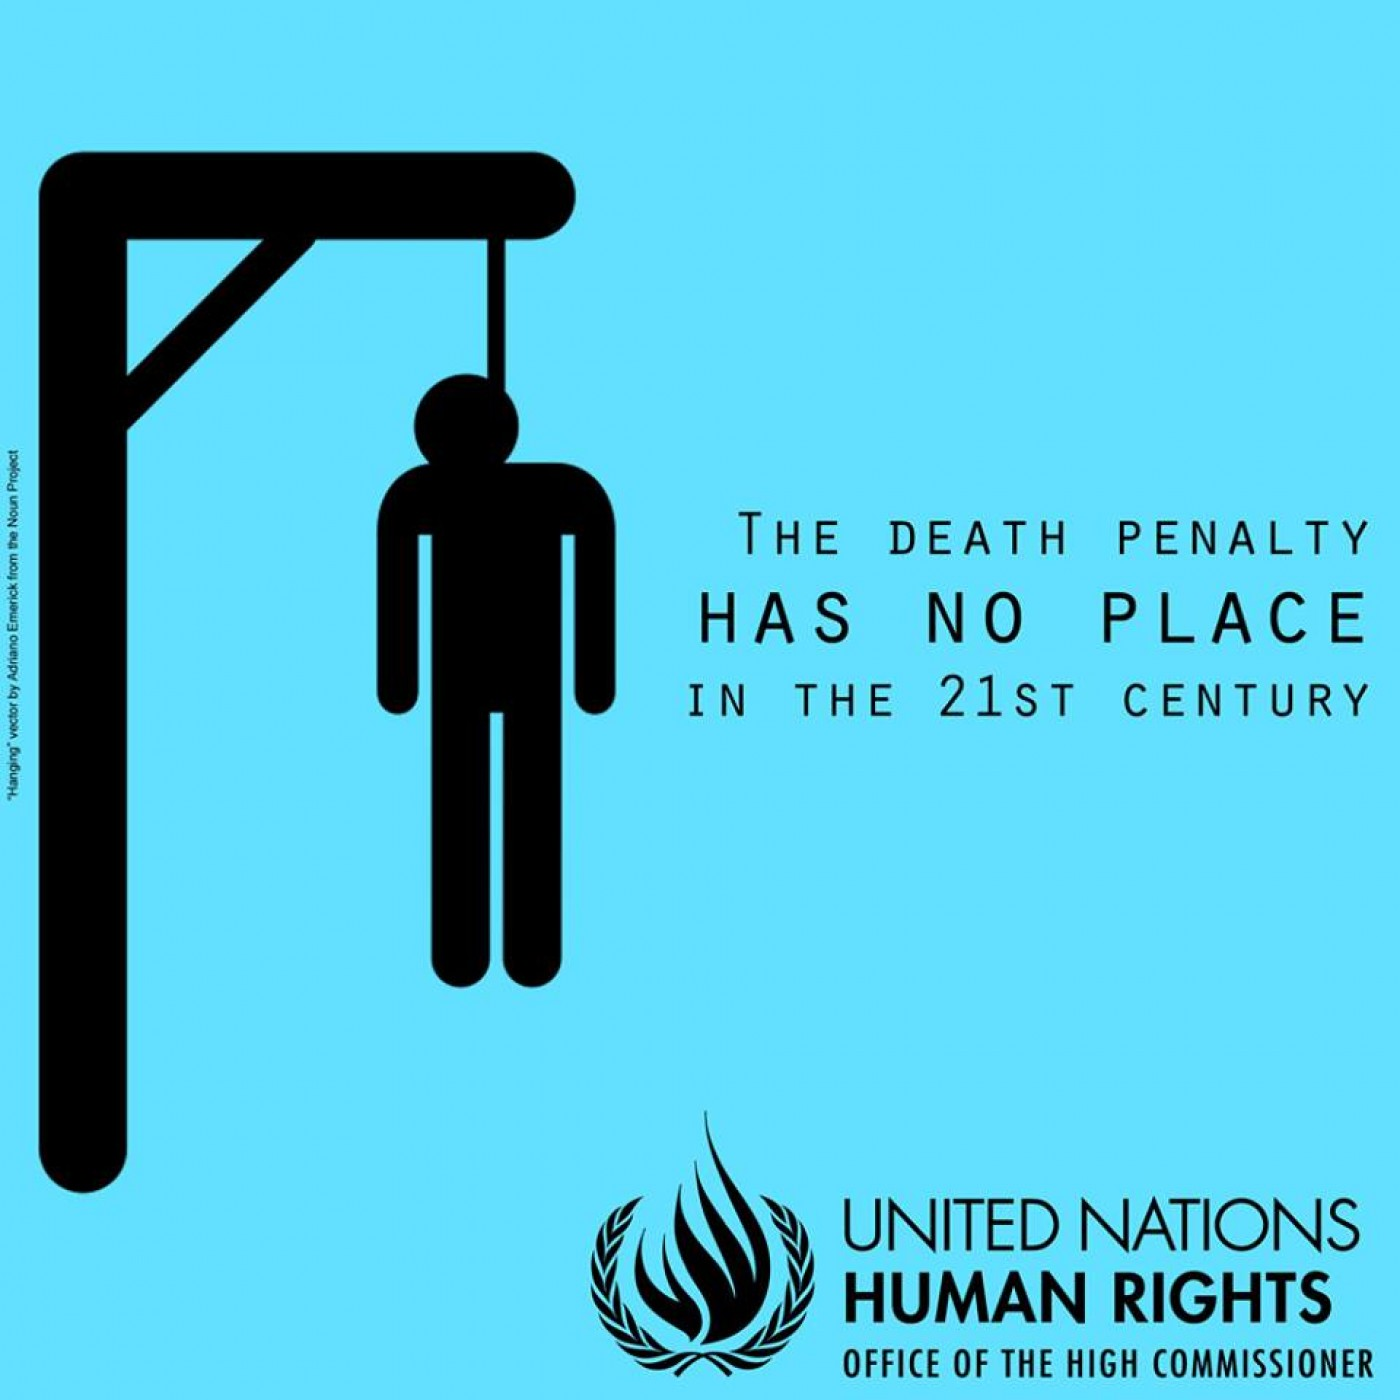 How to write an essay on the death penalty